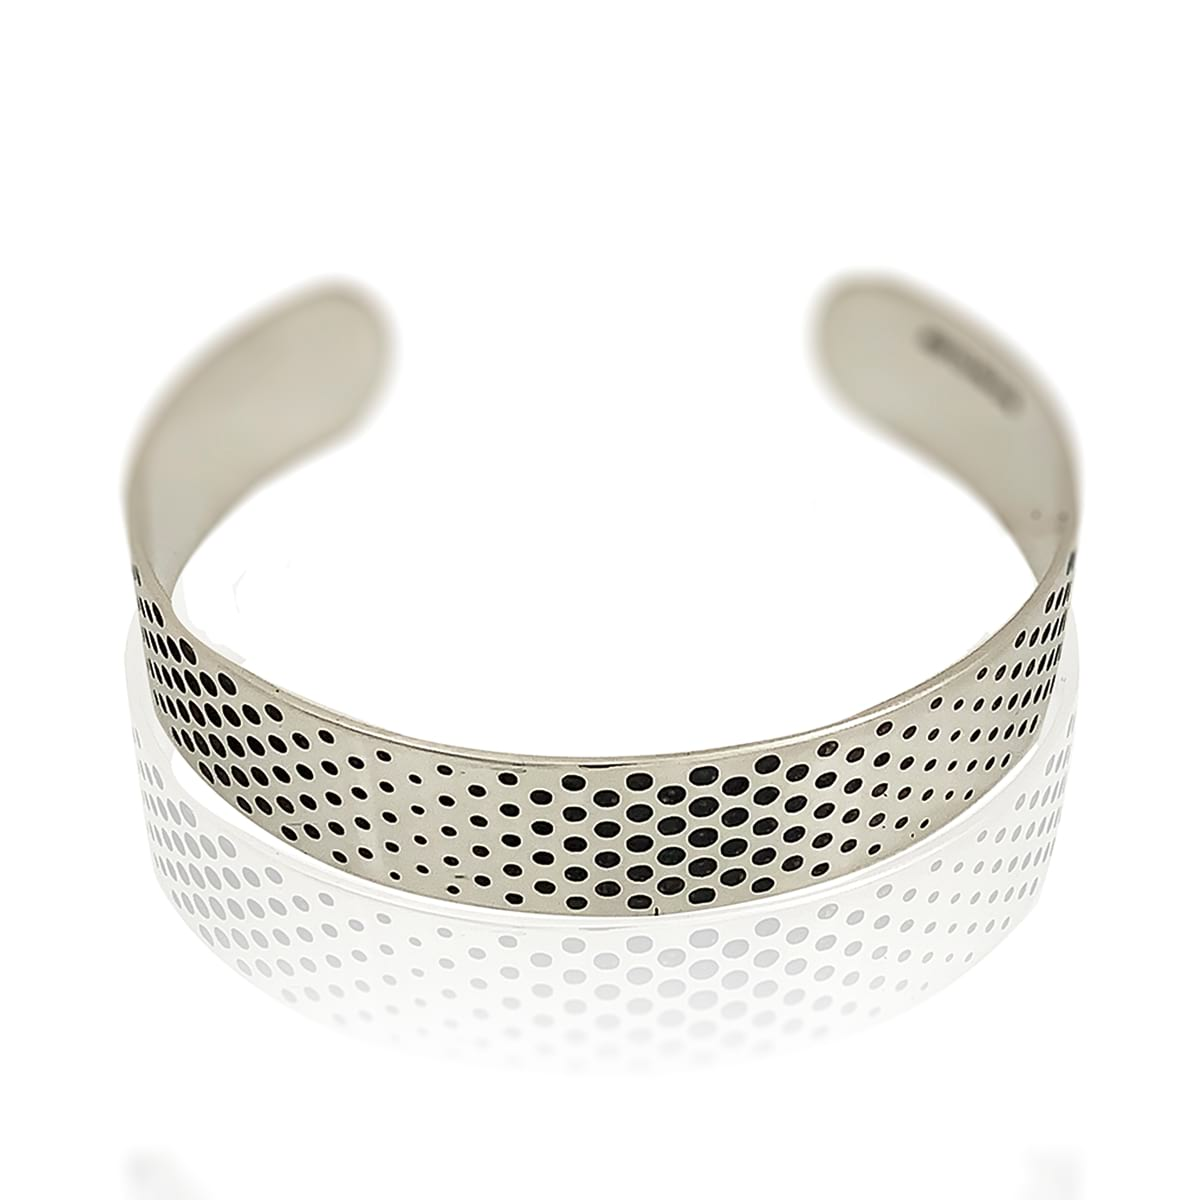 dots silver cuff narrow on white background